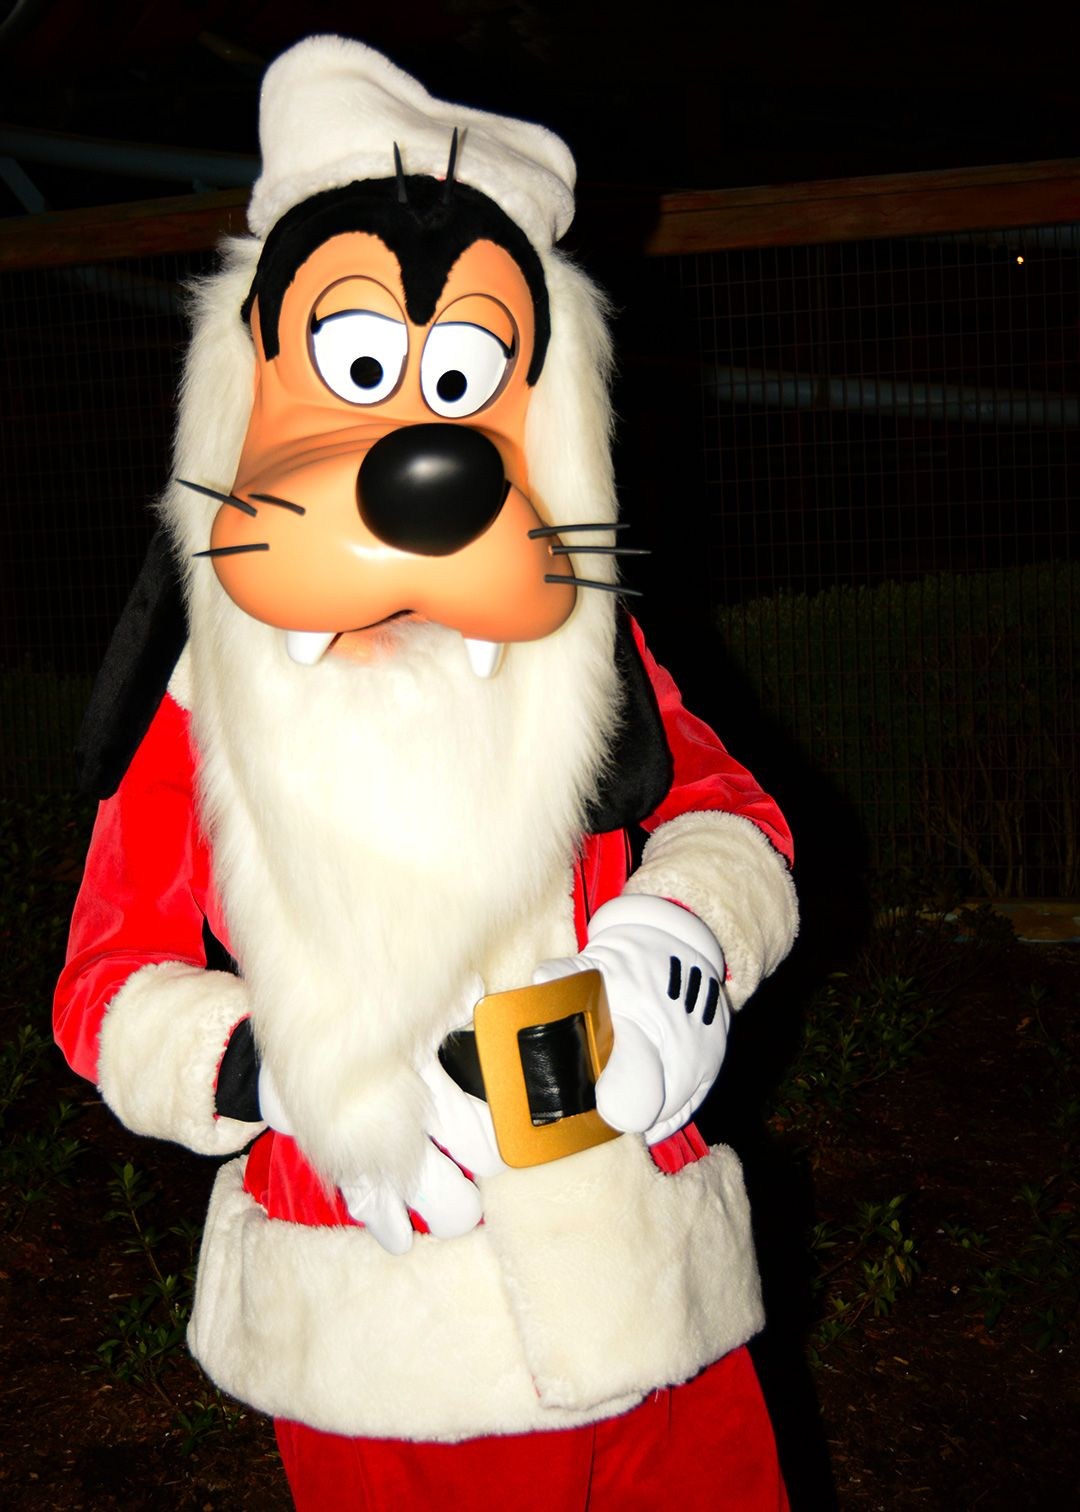 Mickey S Very Merry Christmas Party Review Kennythepirate Com Mickey S Very Merry Christmas Disney Very Merry Christmas Very Merry Christmas Party